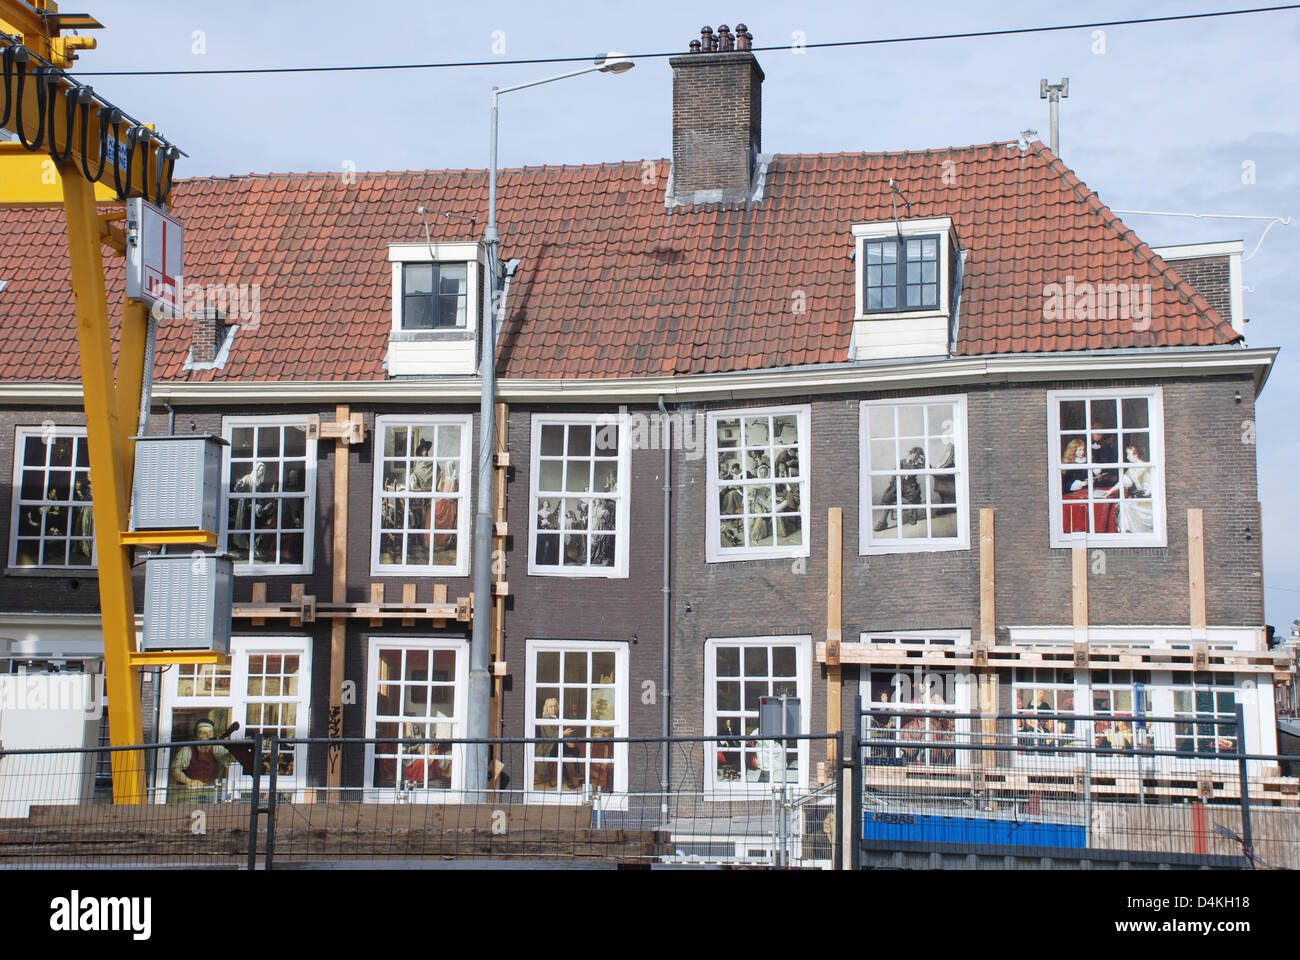 Evacuated and fenced off houses are pictured next to an underground building site in the city centre of Amsterdam, Stock Photo